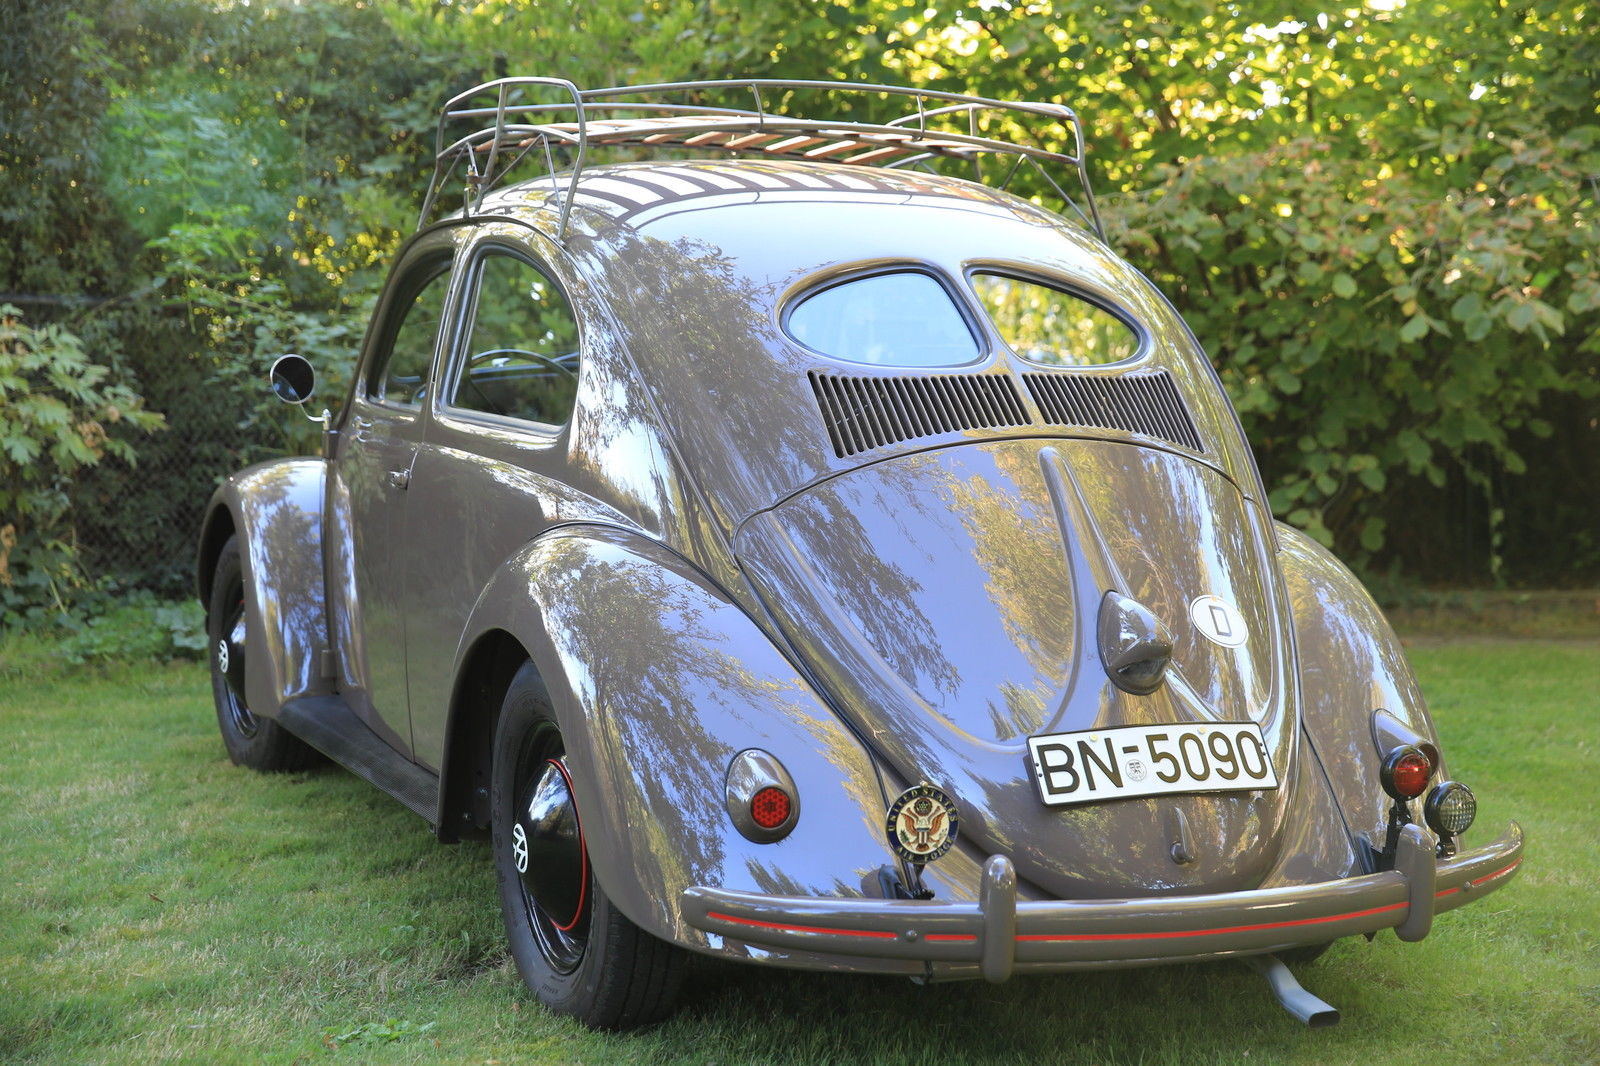 1952 VW Beetle Classic Type 11A Split-Window Sedan | eBay Motors Blog